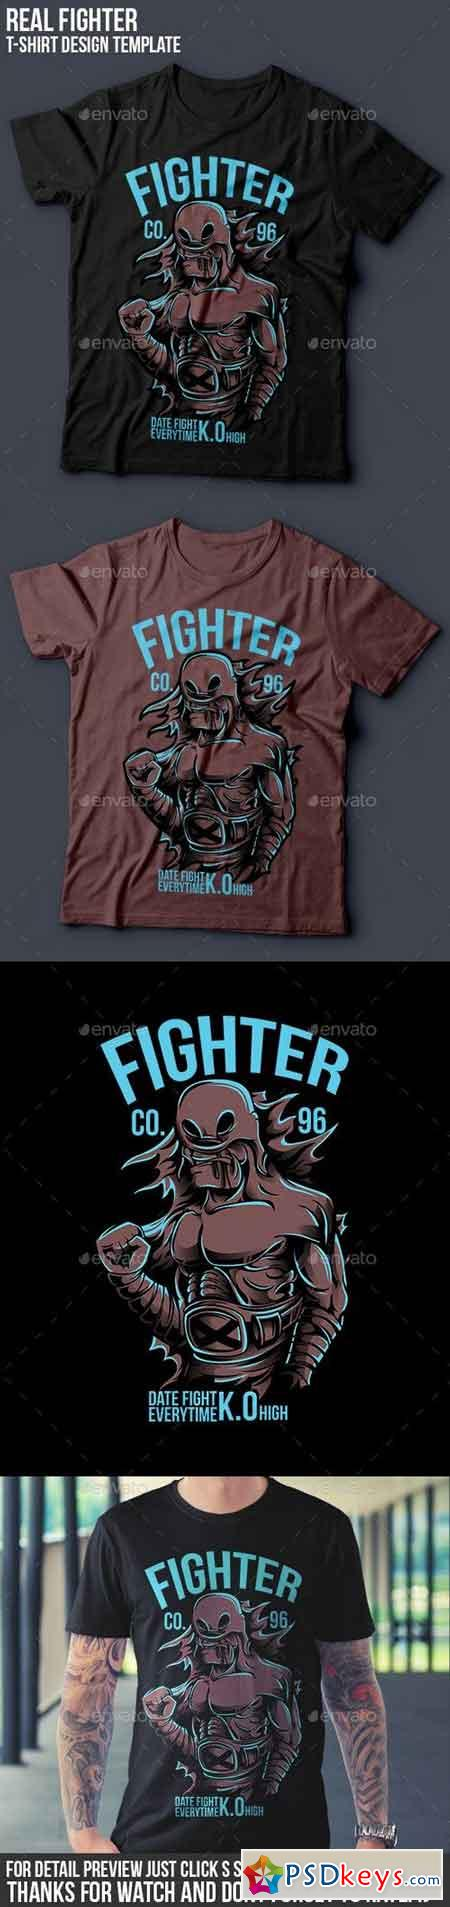 Real Fighter 14481187